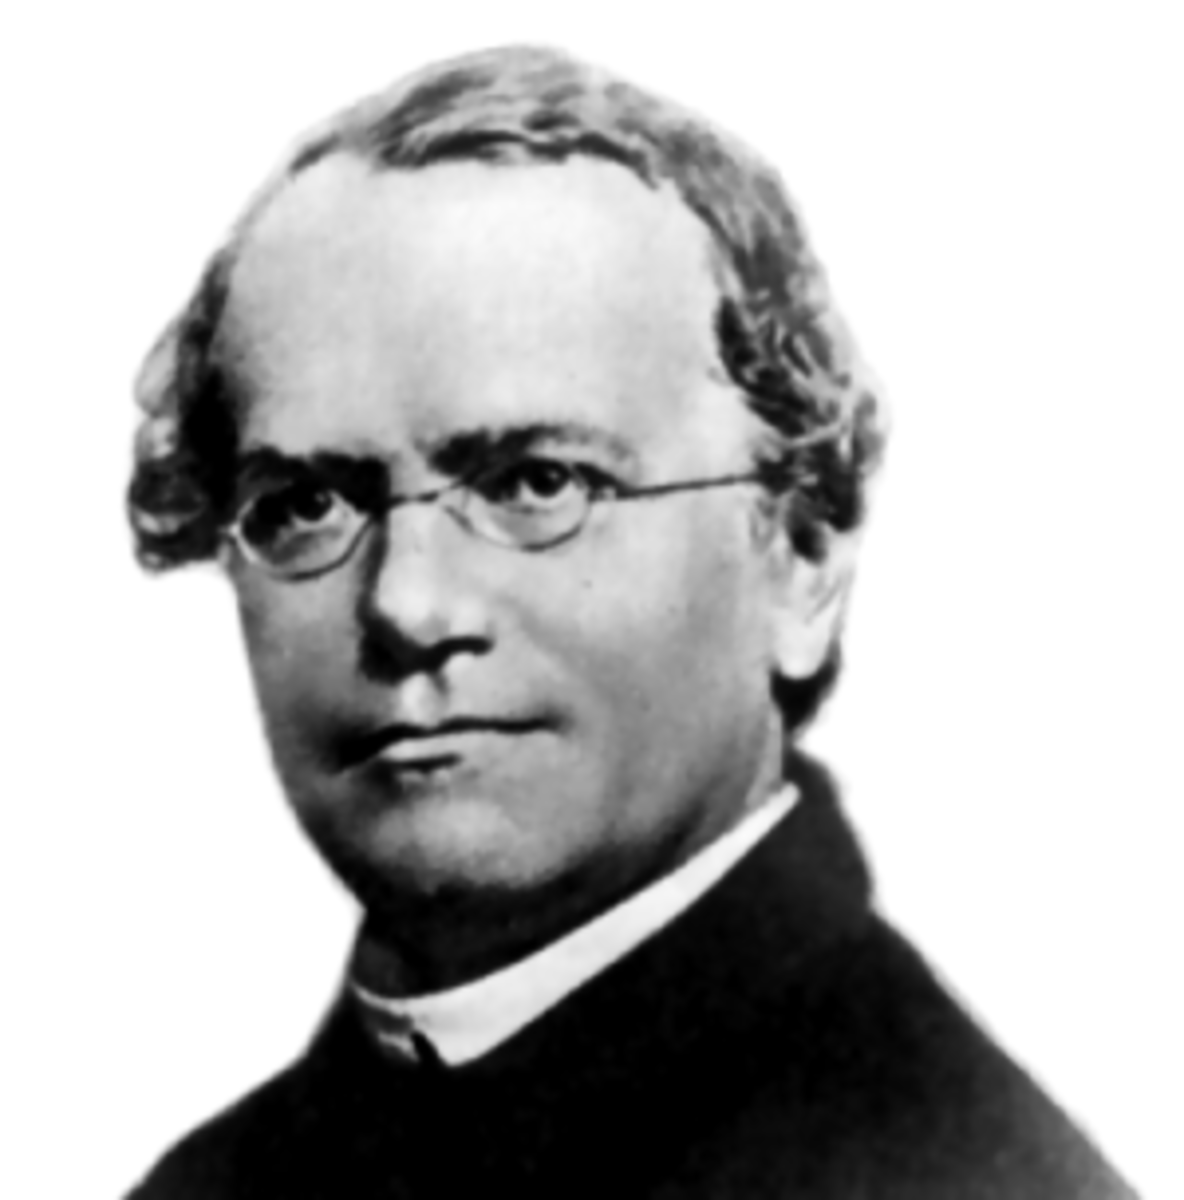 Gregor Mendel is often credited as being the. first modern geneticist.